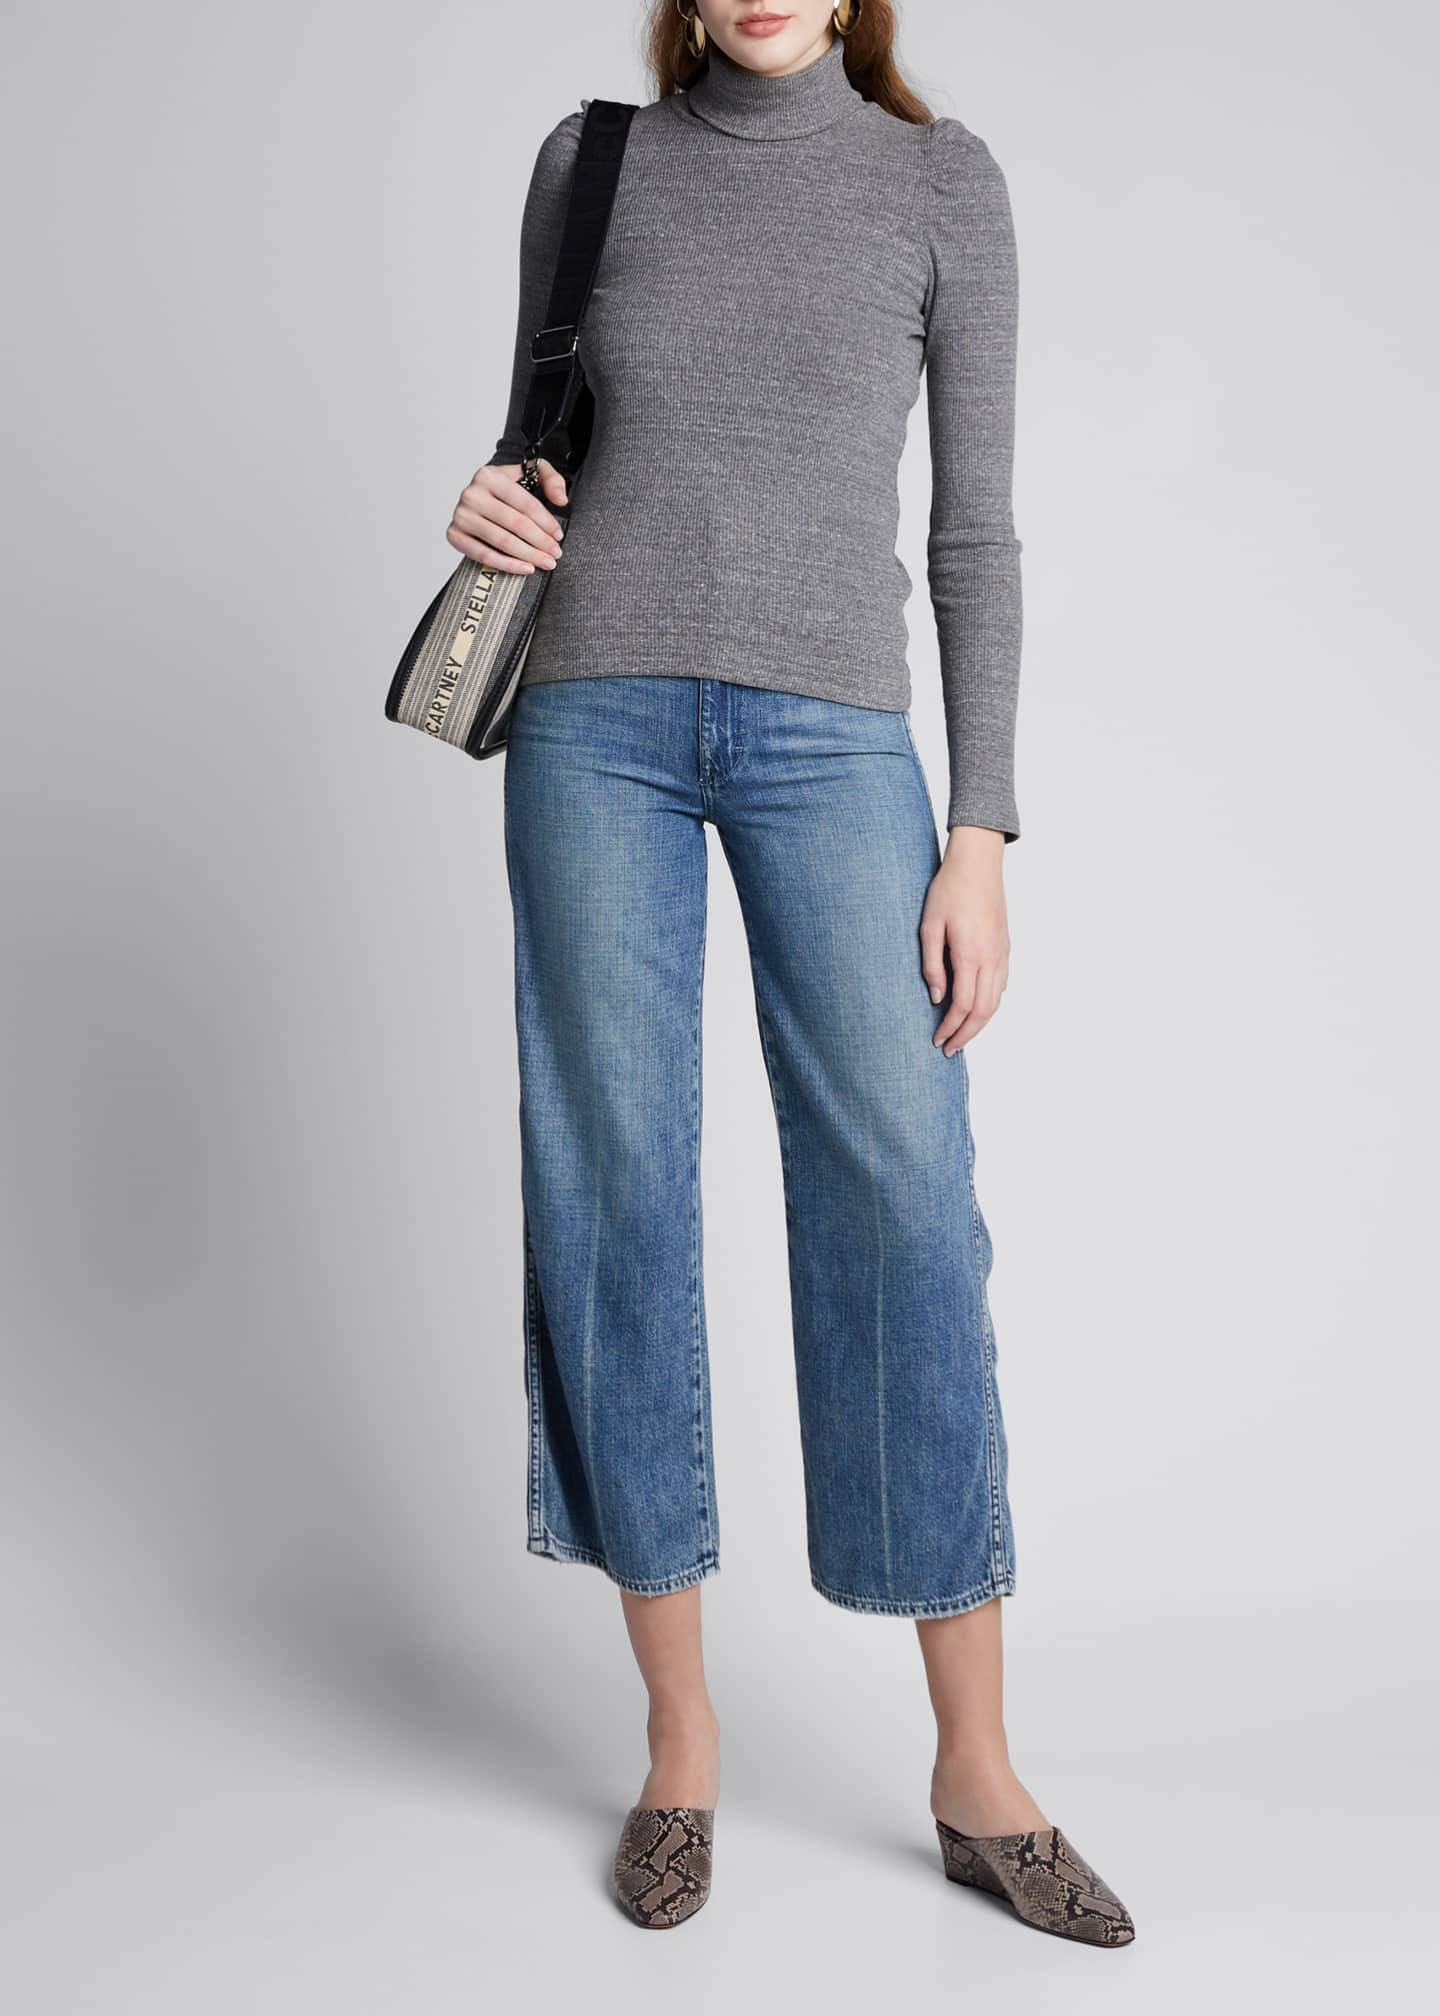 AMO Denim Ava Crop High-Rise Wide-Leg Jeans